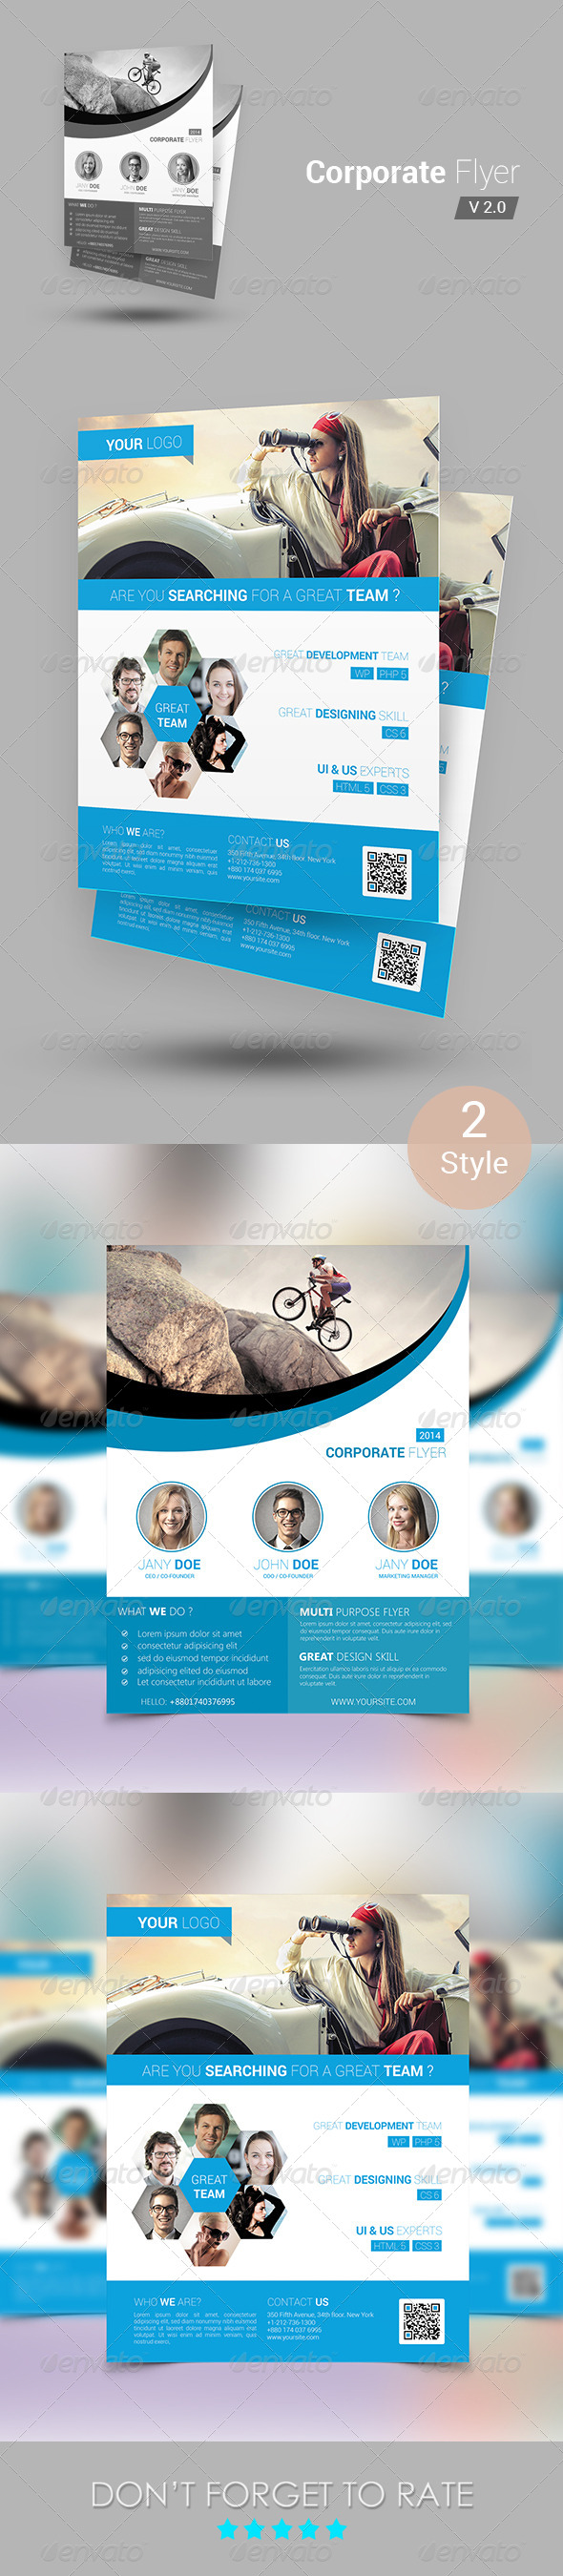 GraphicRiver Corporate Flyer Template 6551781